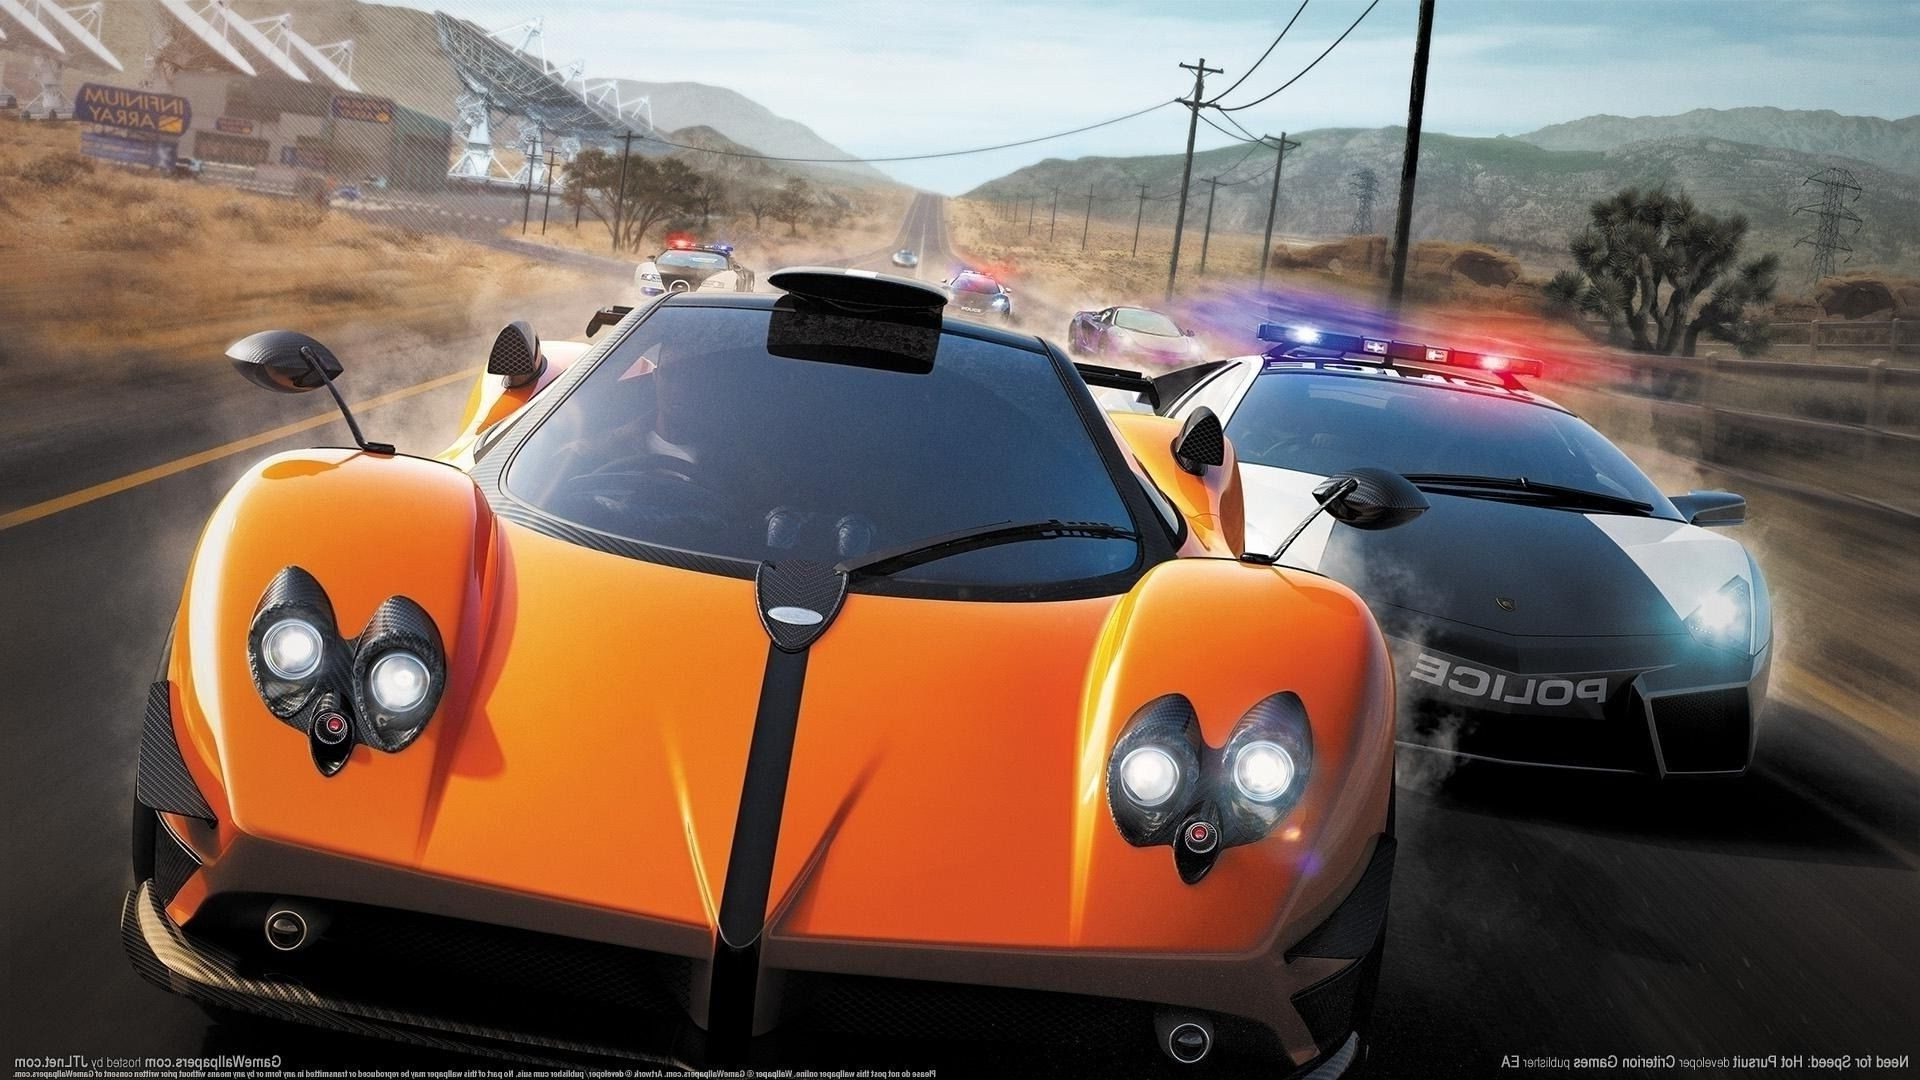 Nfs Hot Pursuit Need For Speed Race Cop Lamborghini Free Wallpapers